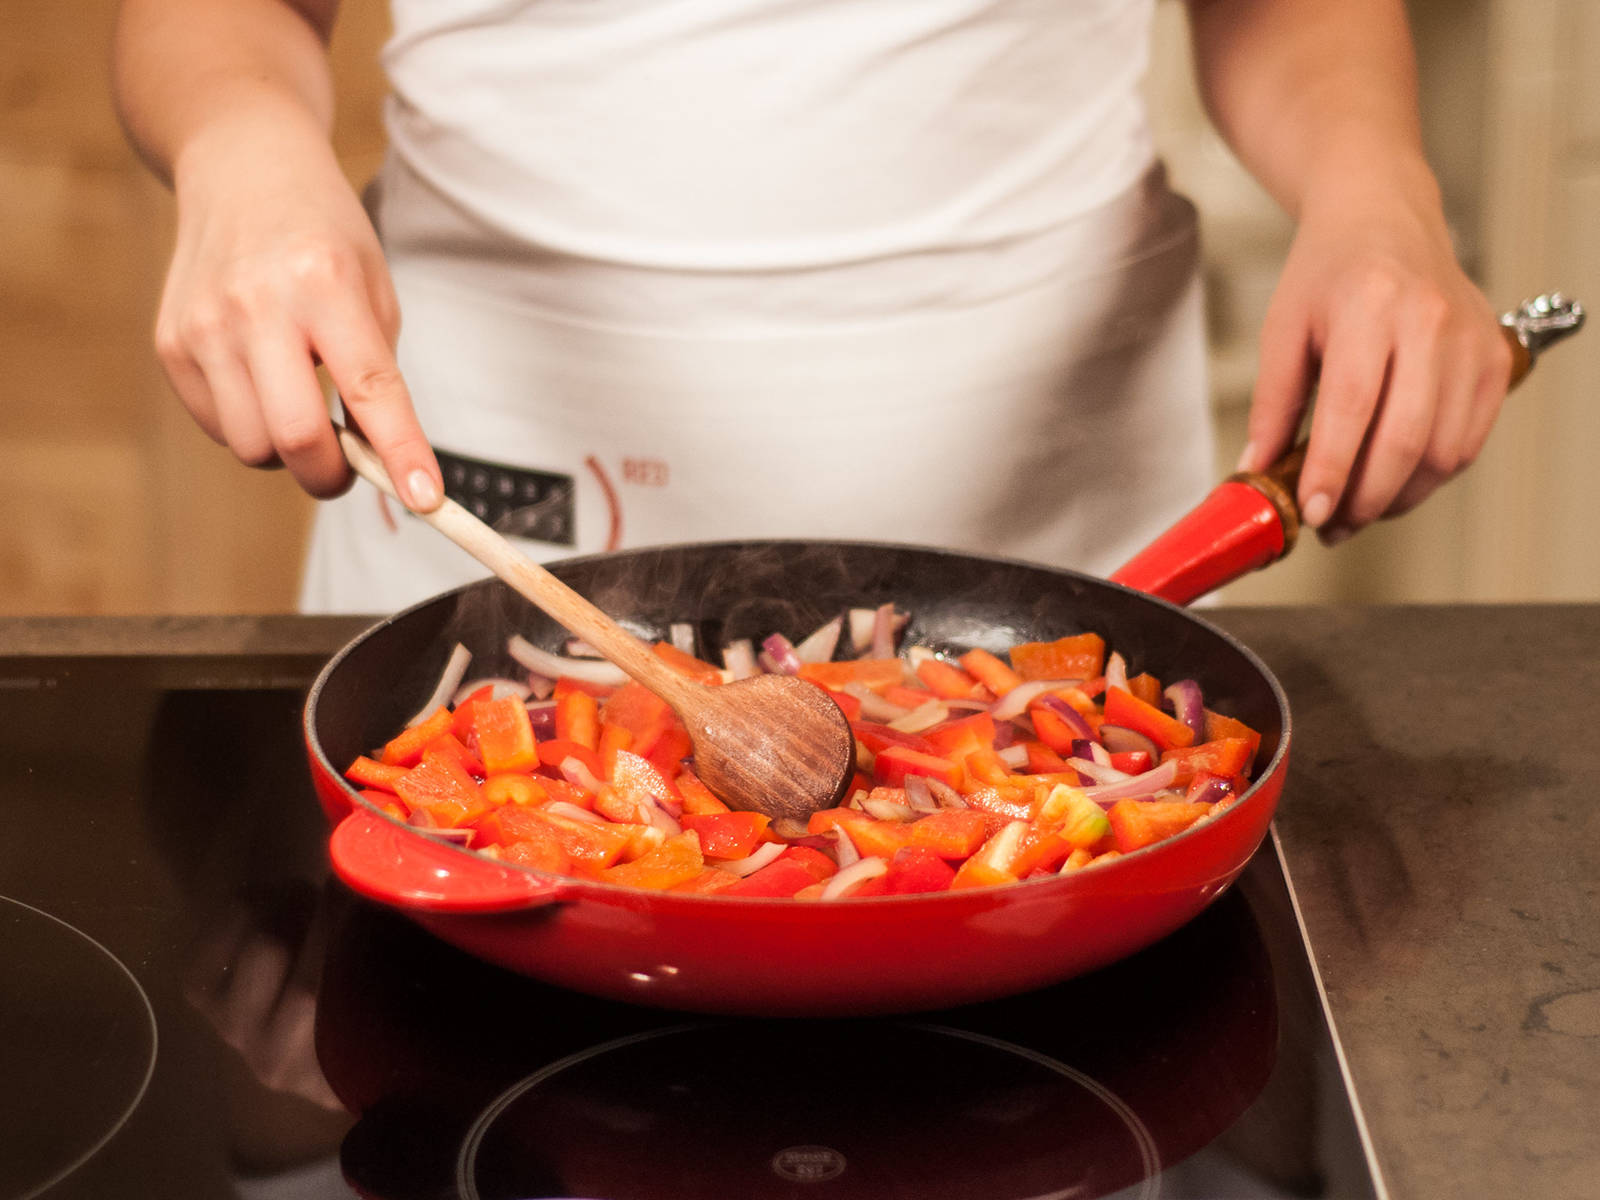 Heat up some peanut oil in a large frying pan. Sauté chopped onion, garlic, and bell pepper until slightly softened.